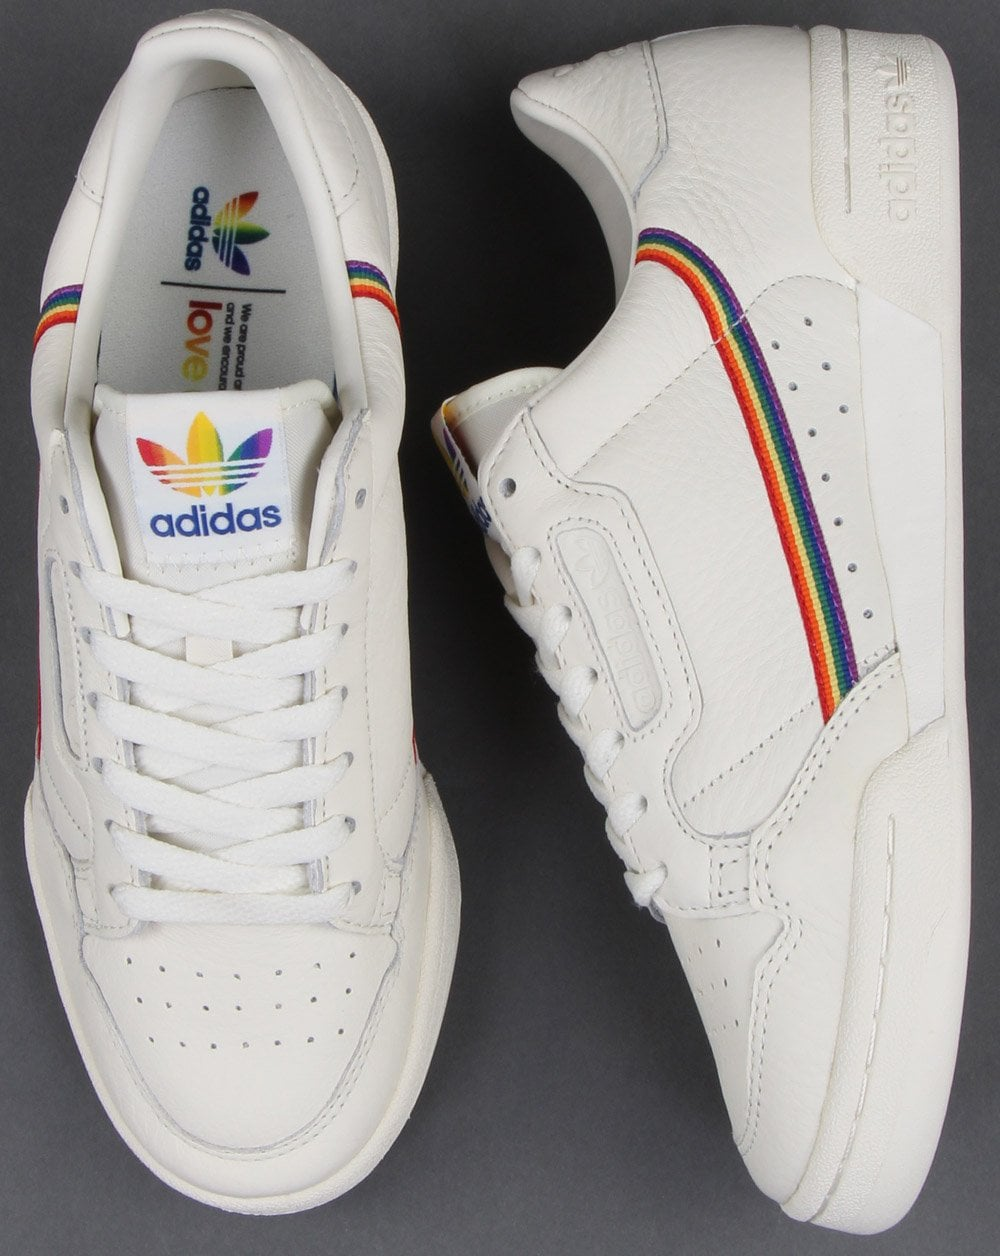 Adidas Continental 80s Pride Trainers